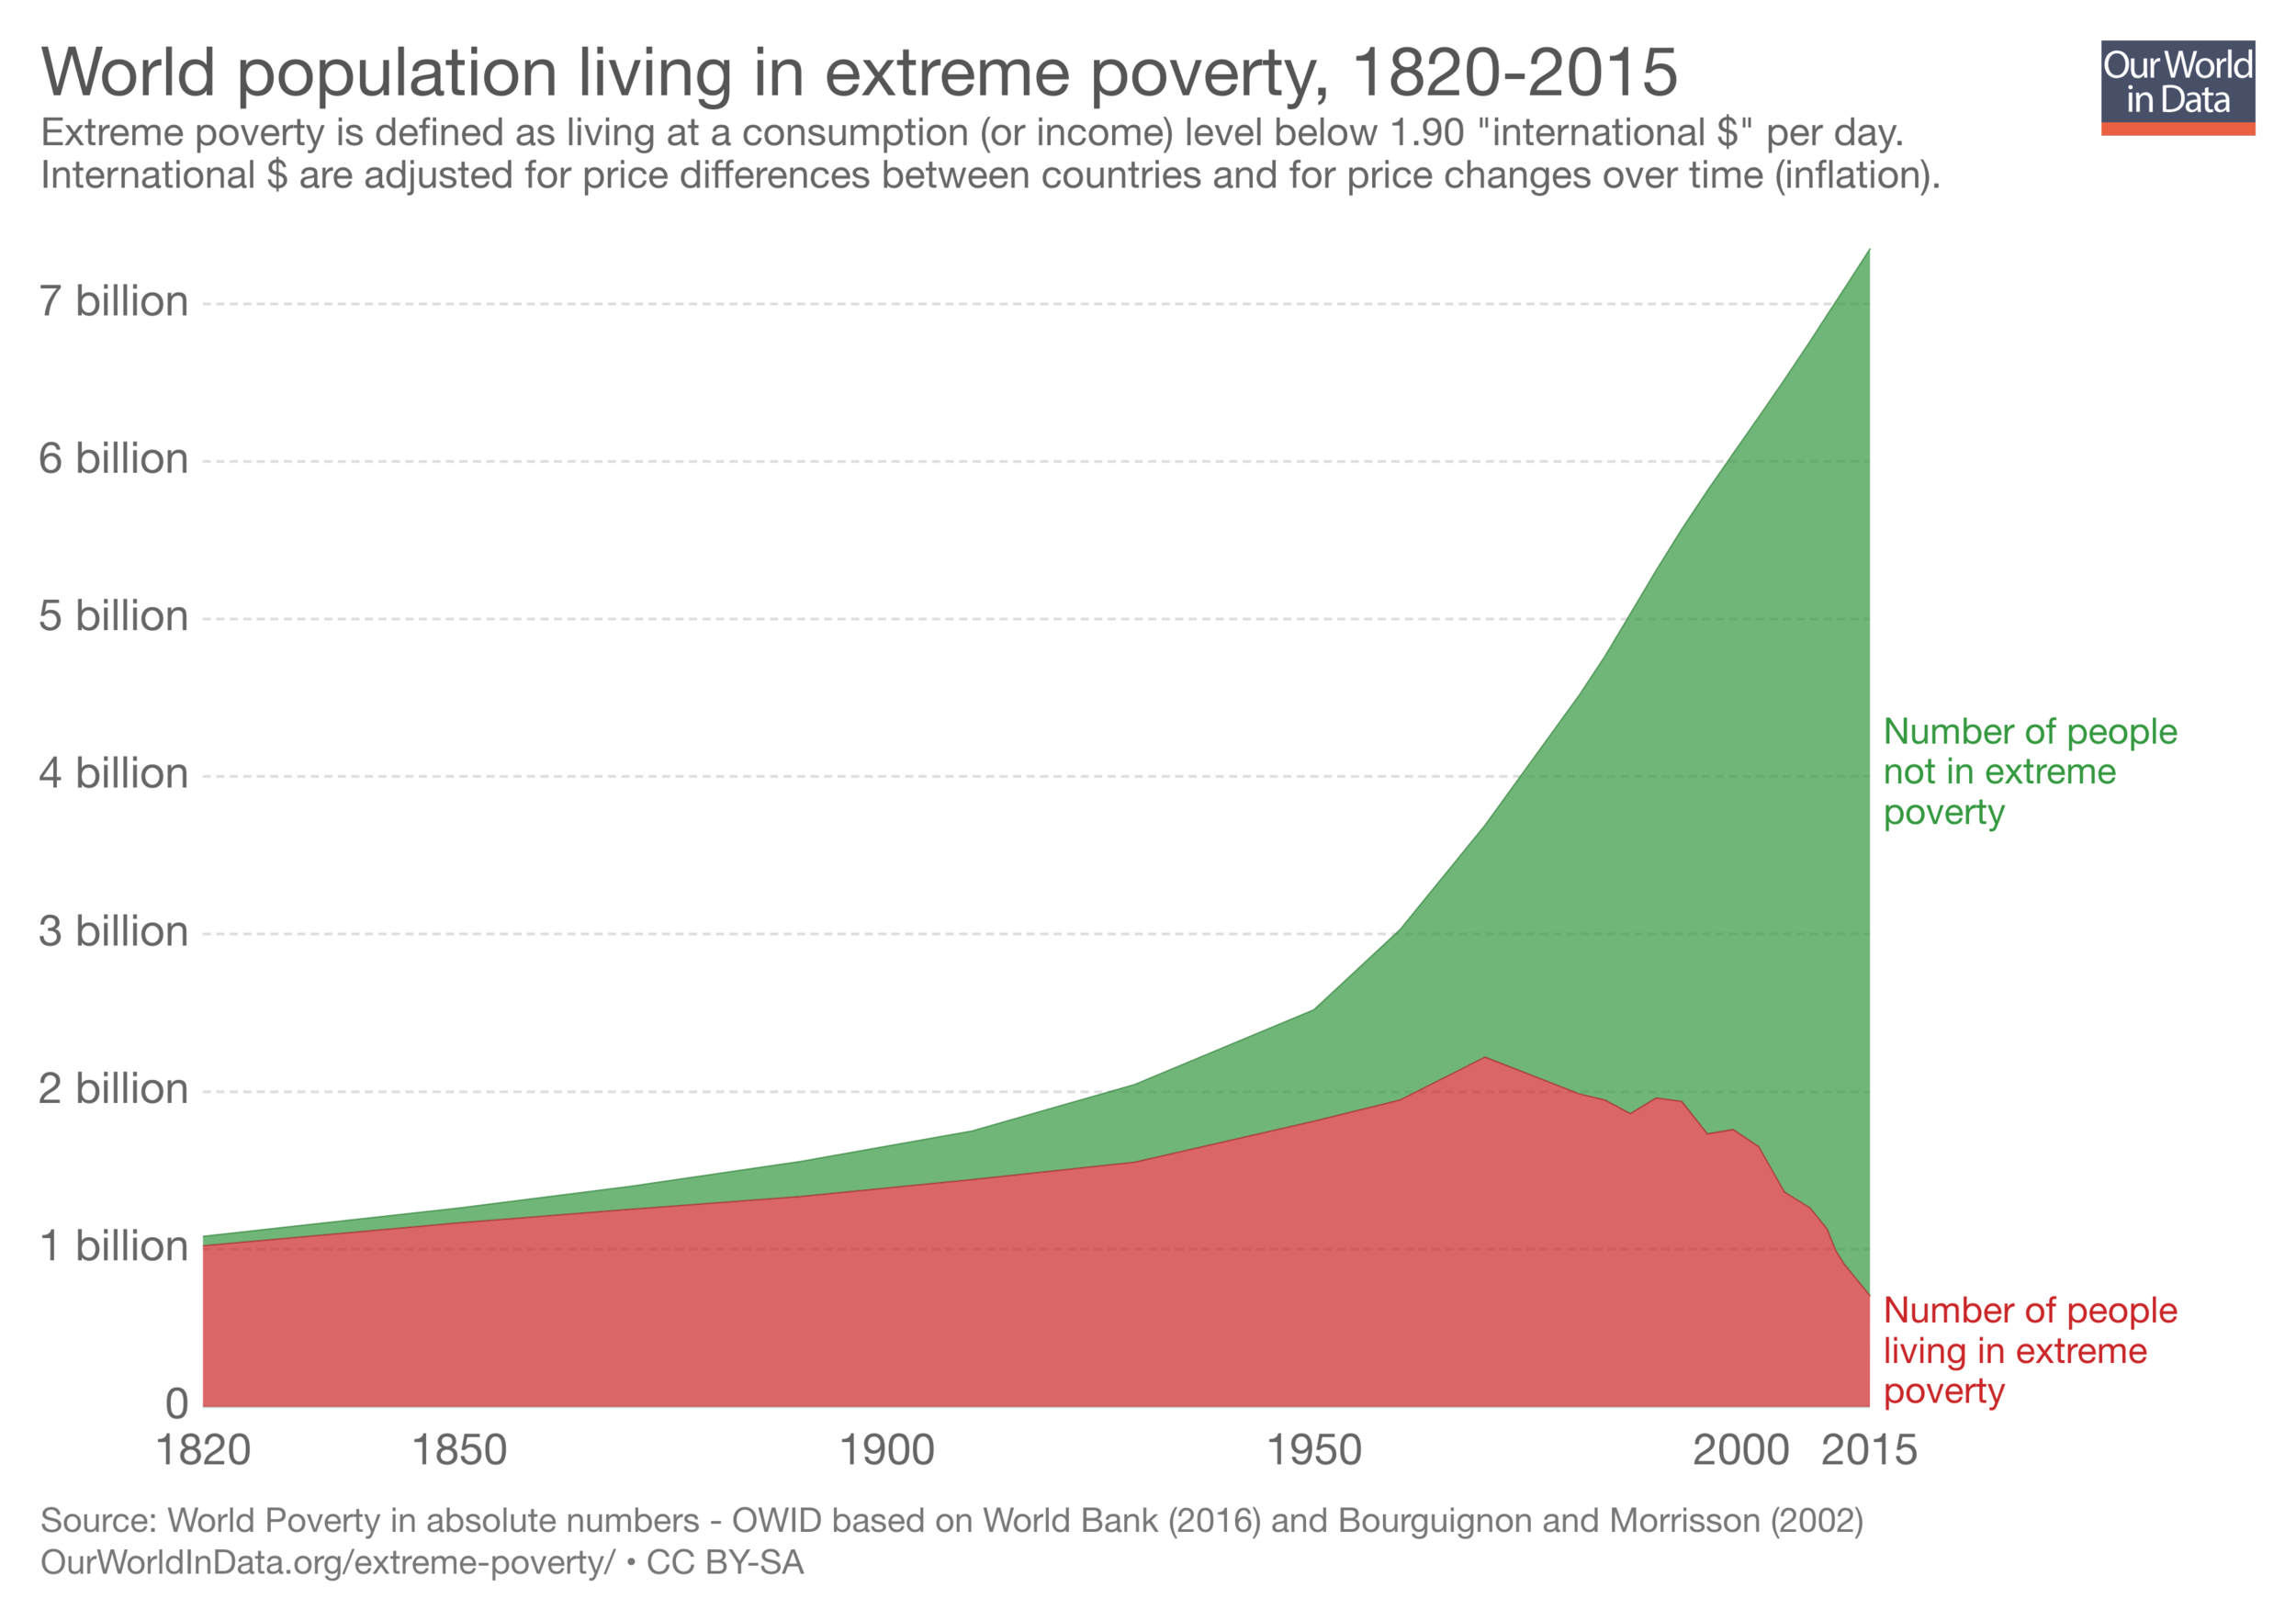 11192018_extreme poverty.png